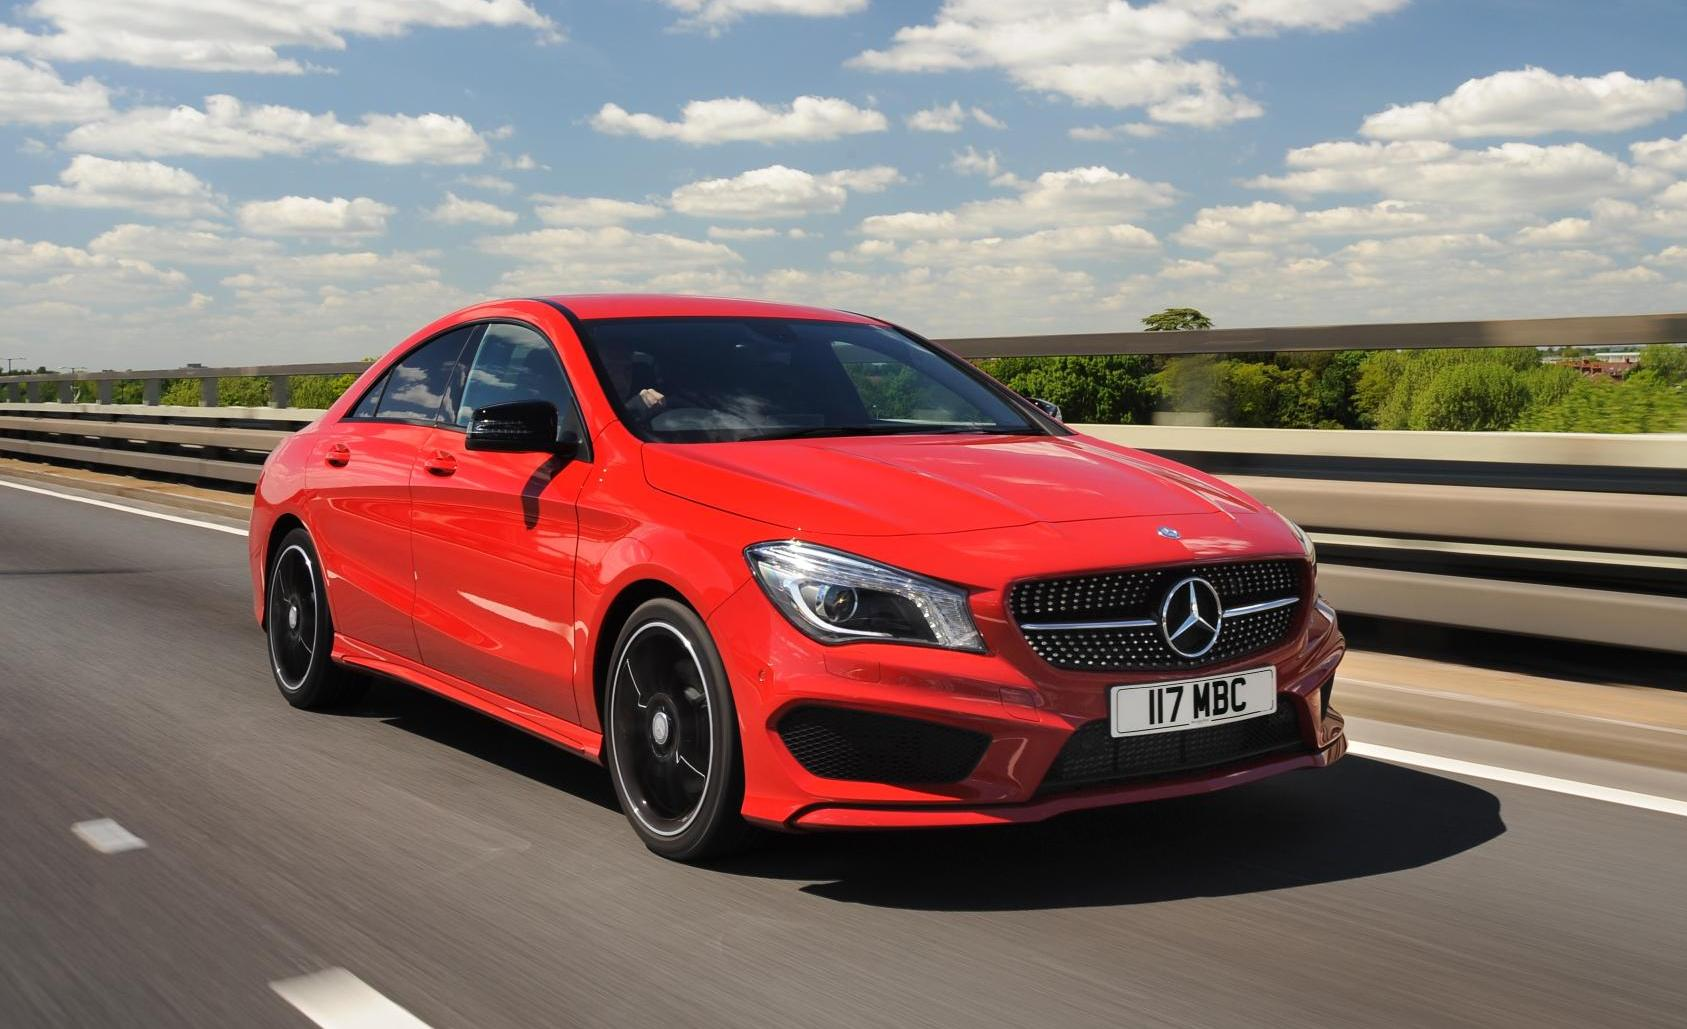 Mercedes Benz Cla Class Sedan Frequently Asked Questions